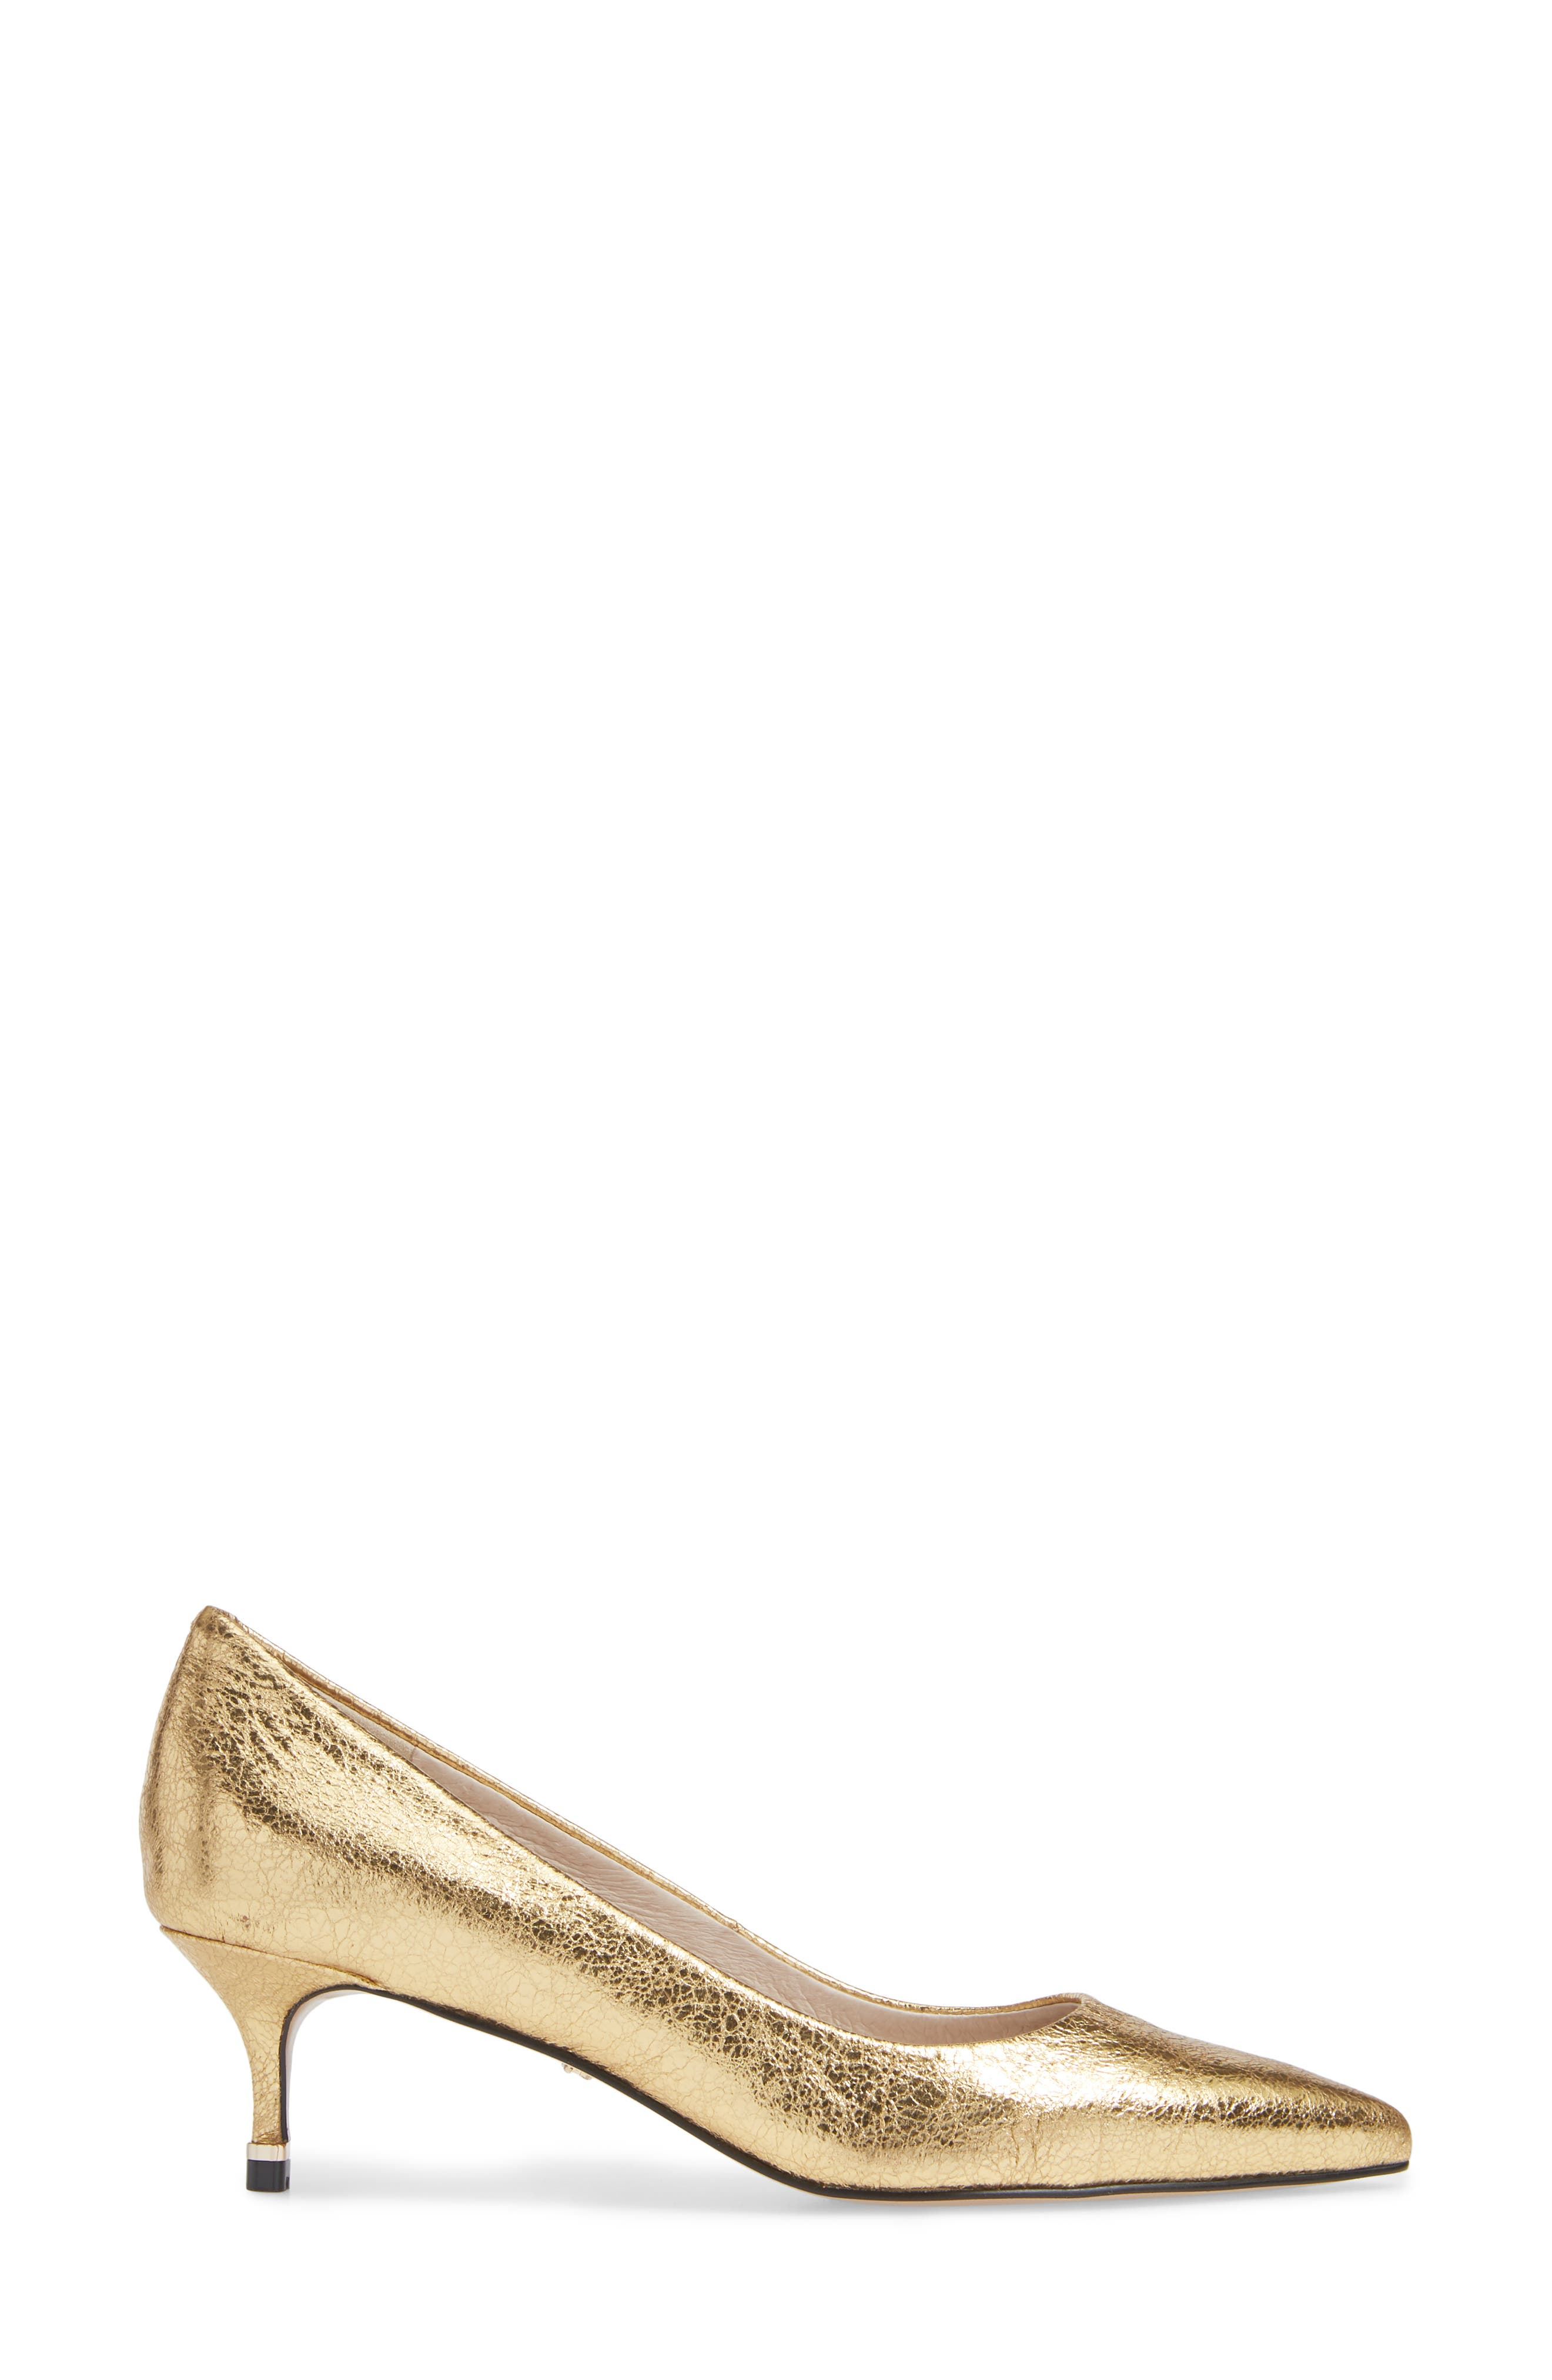 Riley 50 Pump,                             Alternate thumbnail 3, color,                             YELLOW GOLD LEATHER